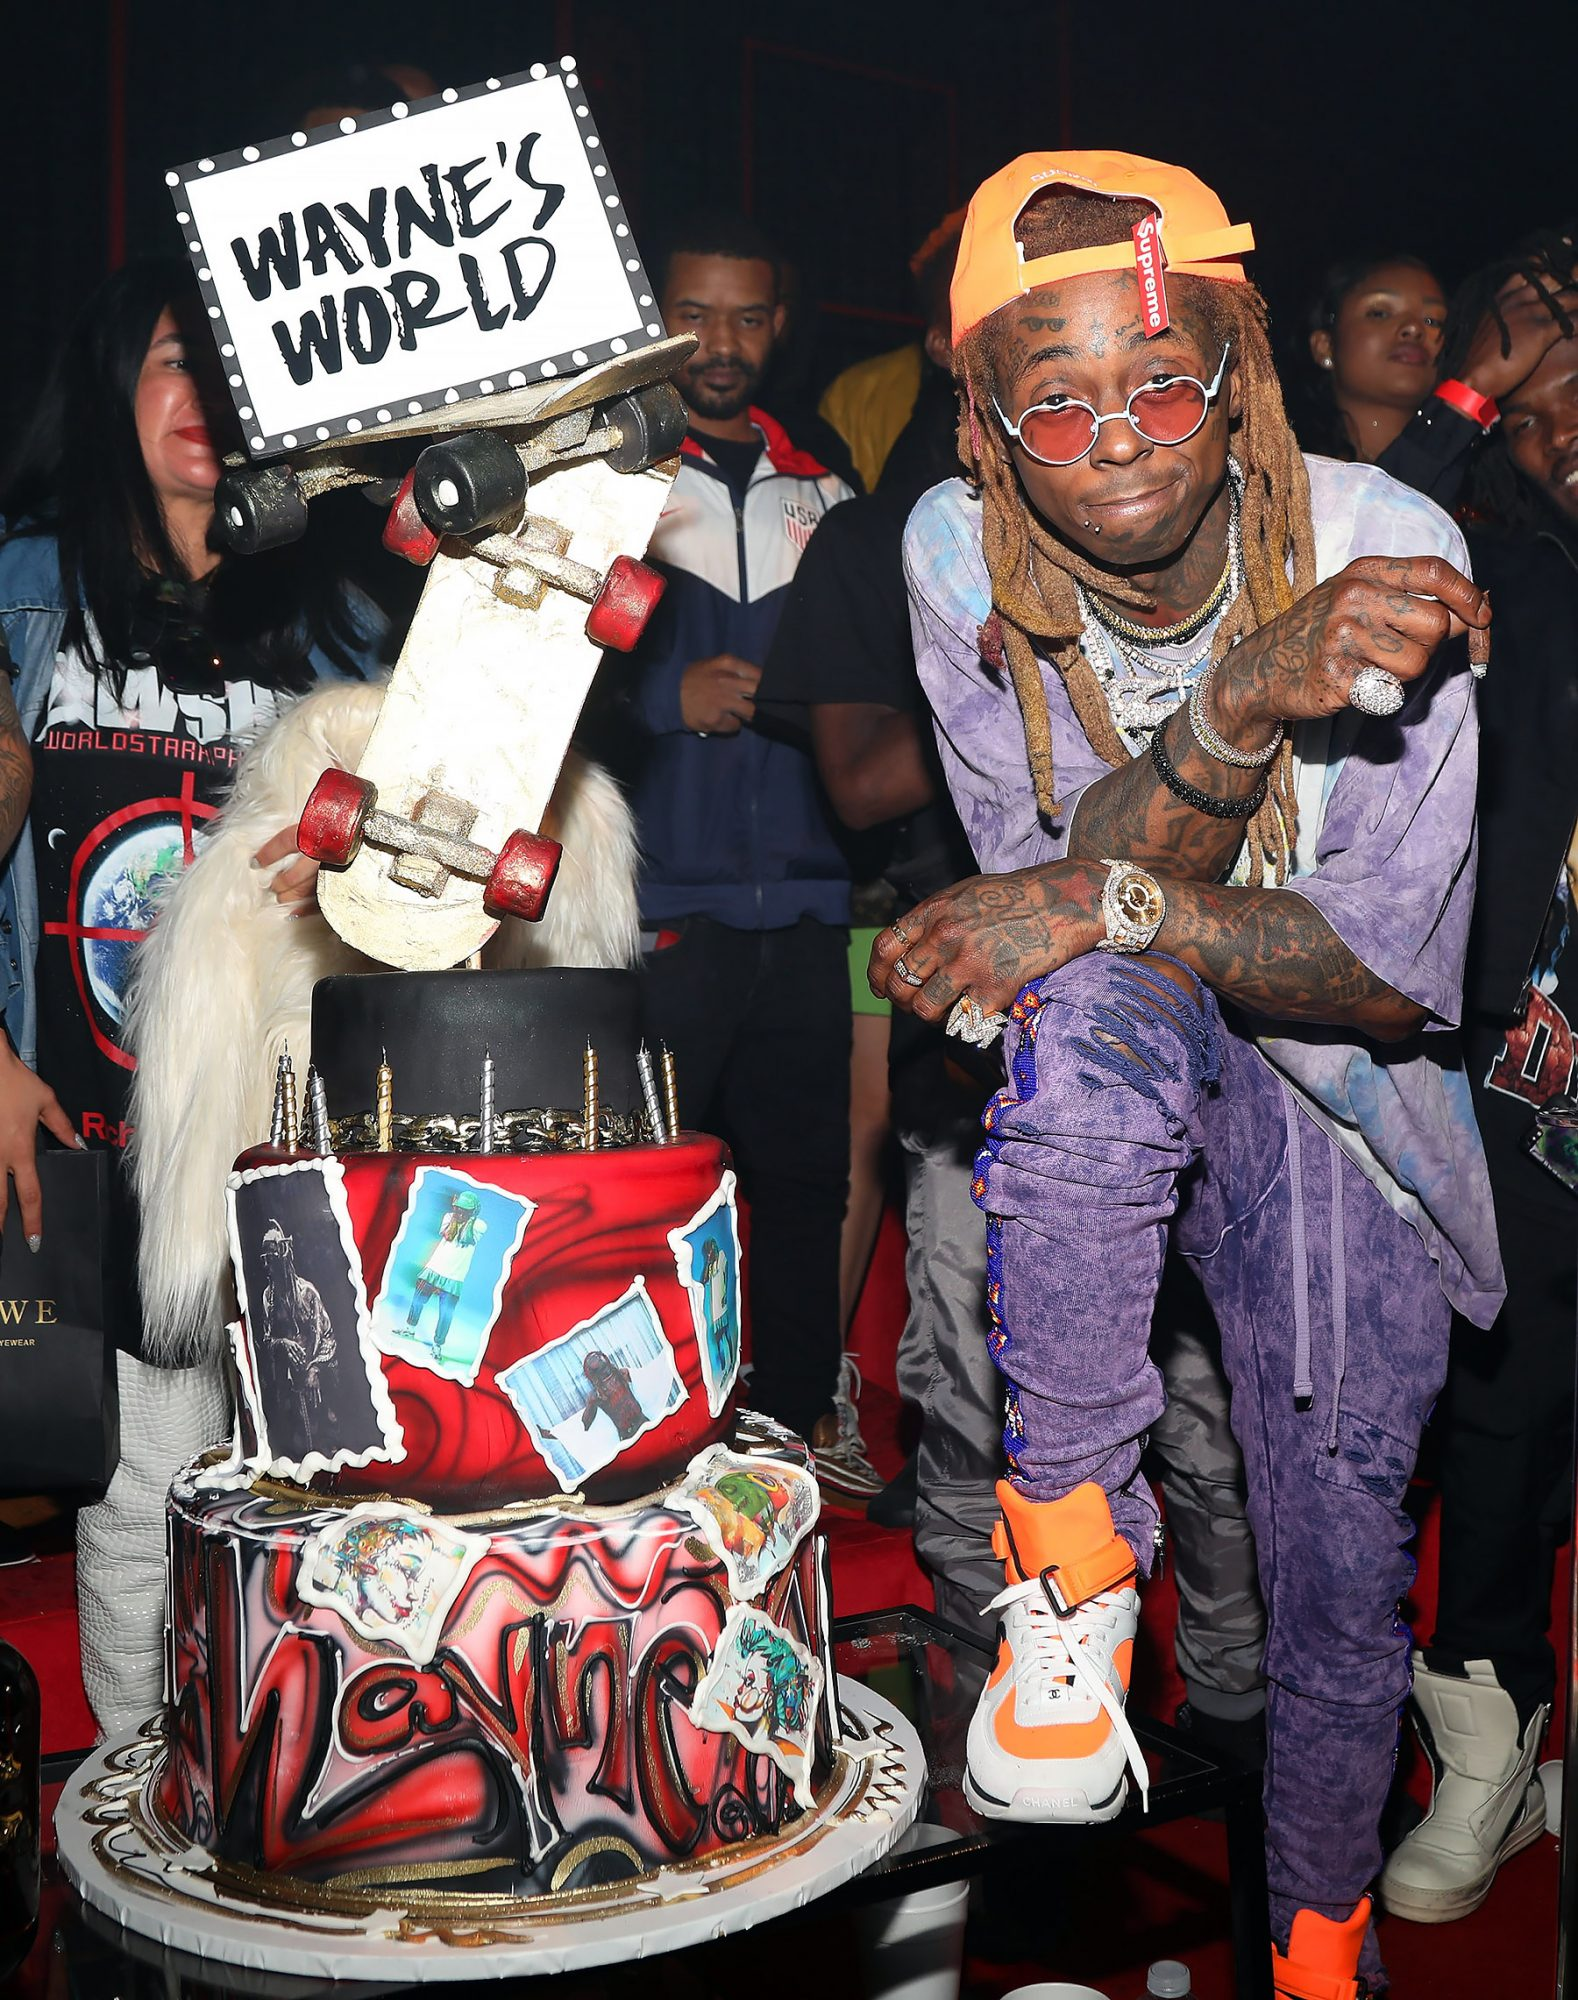 Lil Wayne 36th Birthday Party/Carter V Release Party